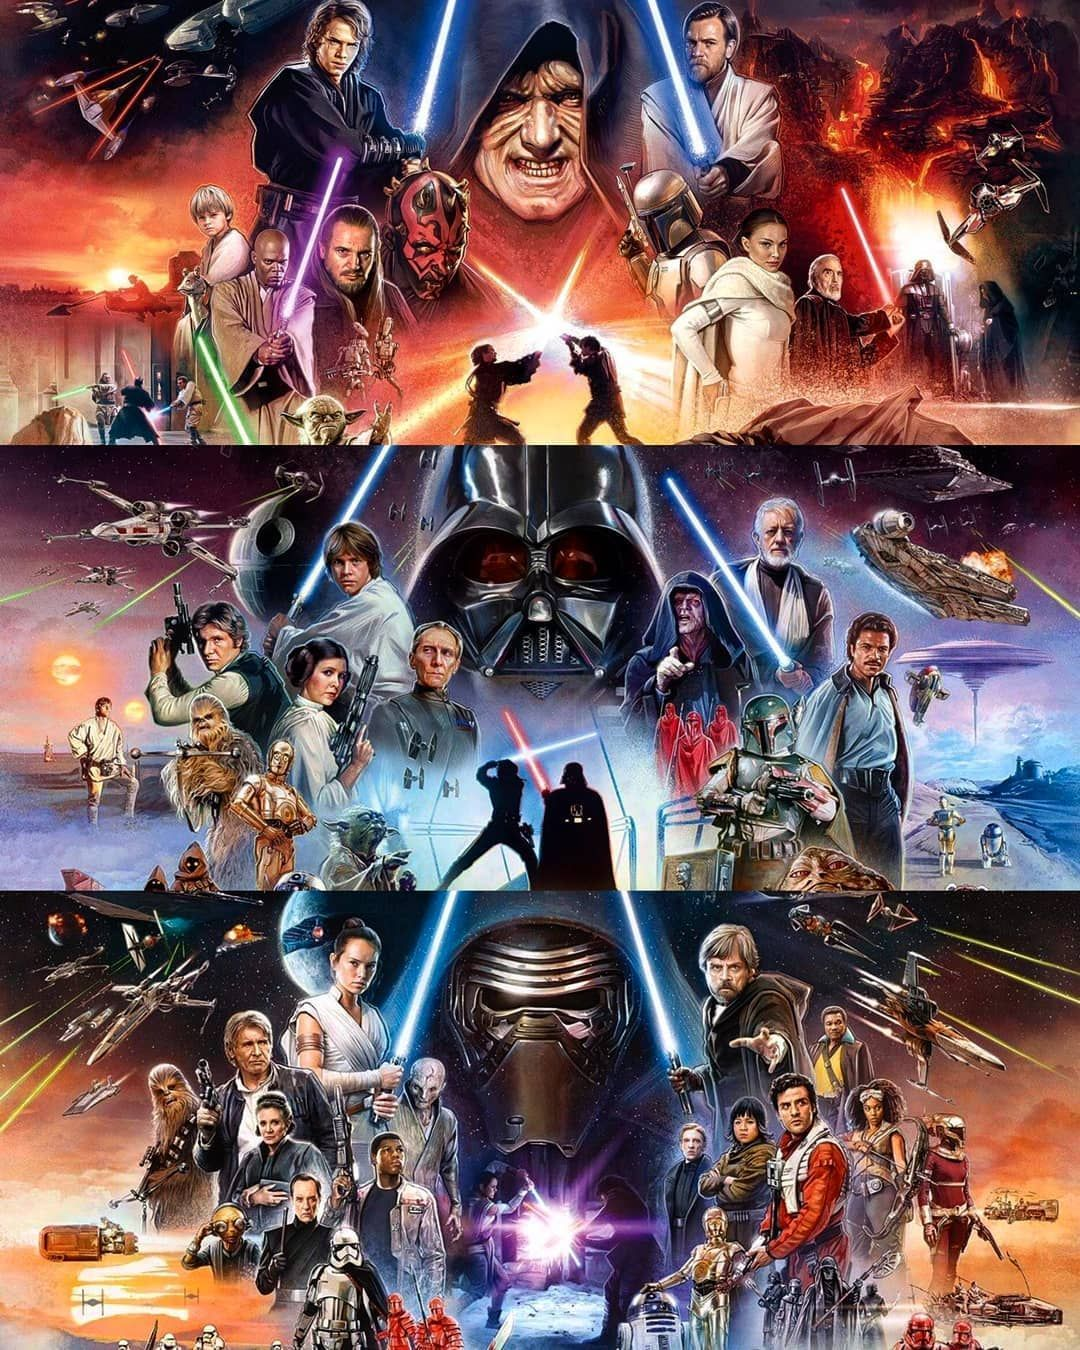 Star Wars Lore On Instagram The Saga Has Come To An End How Do You Think Disney Handled The Sequel Trilo In 2020 Star Wars Pictures Star Wars Artwork Star Wars Poster